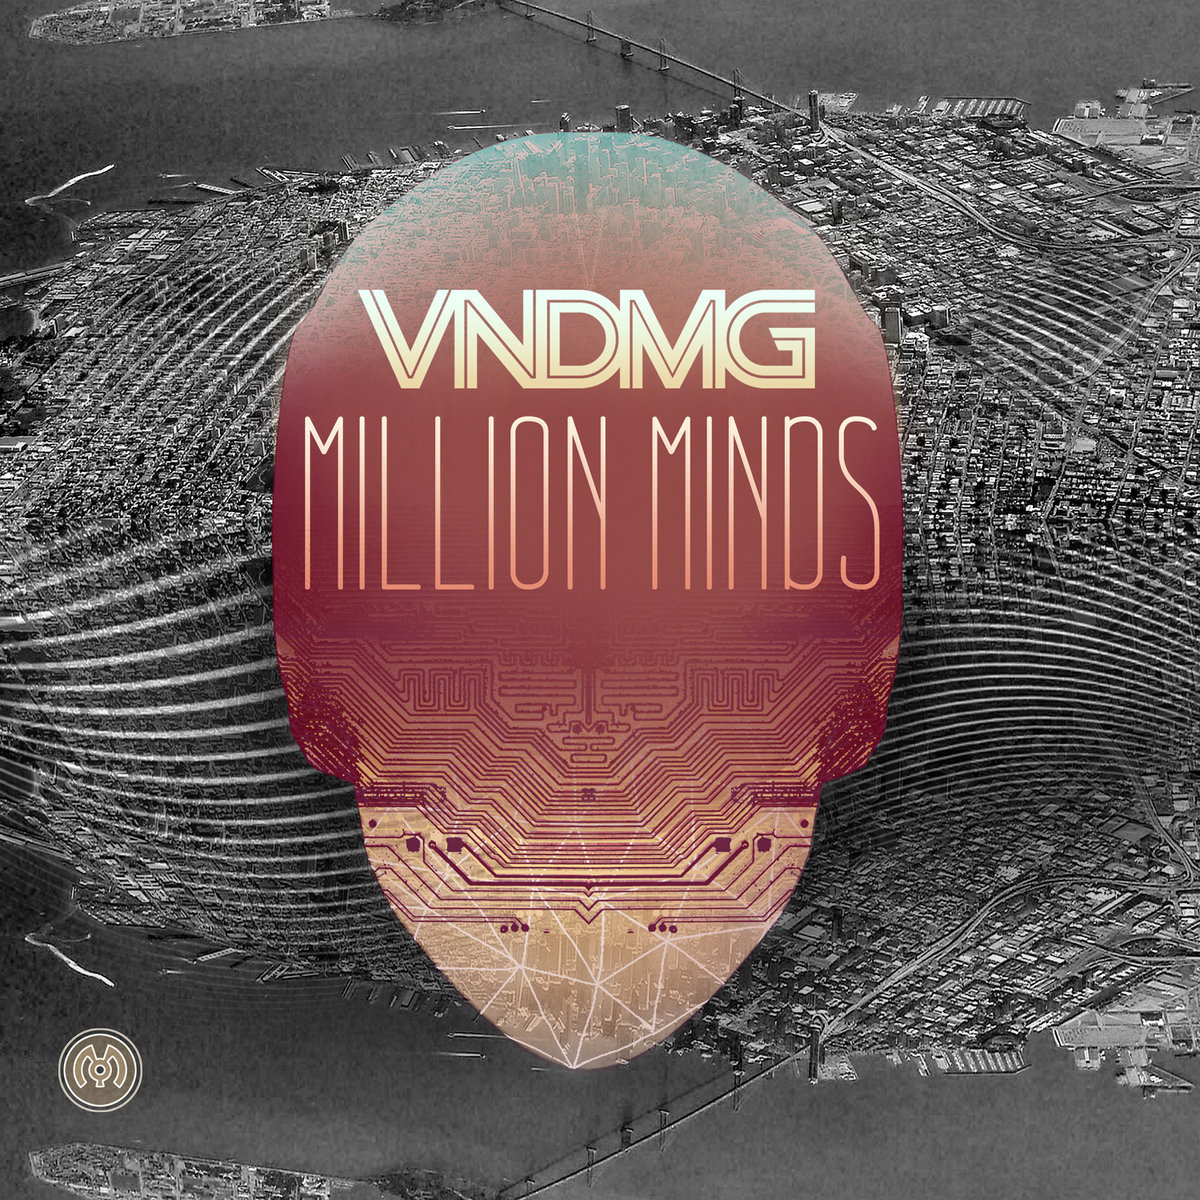 VNDMG feat. Turtleneck & E-jazzy - Hands on the Dash @ 'Million Minds' album (electronic, dubstep)